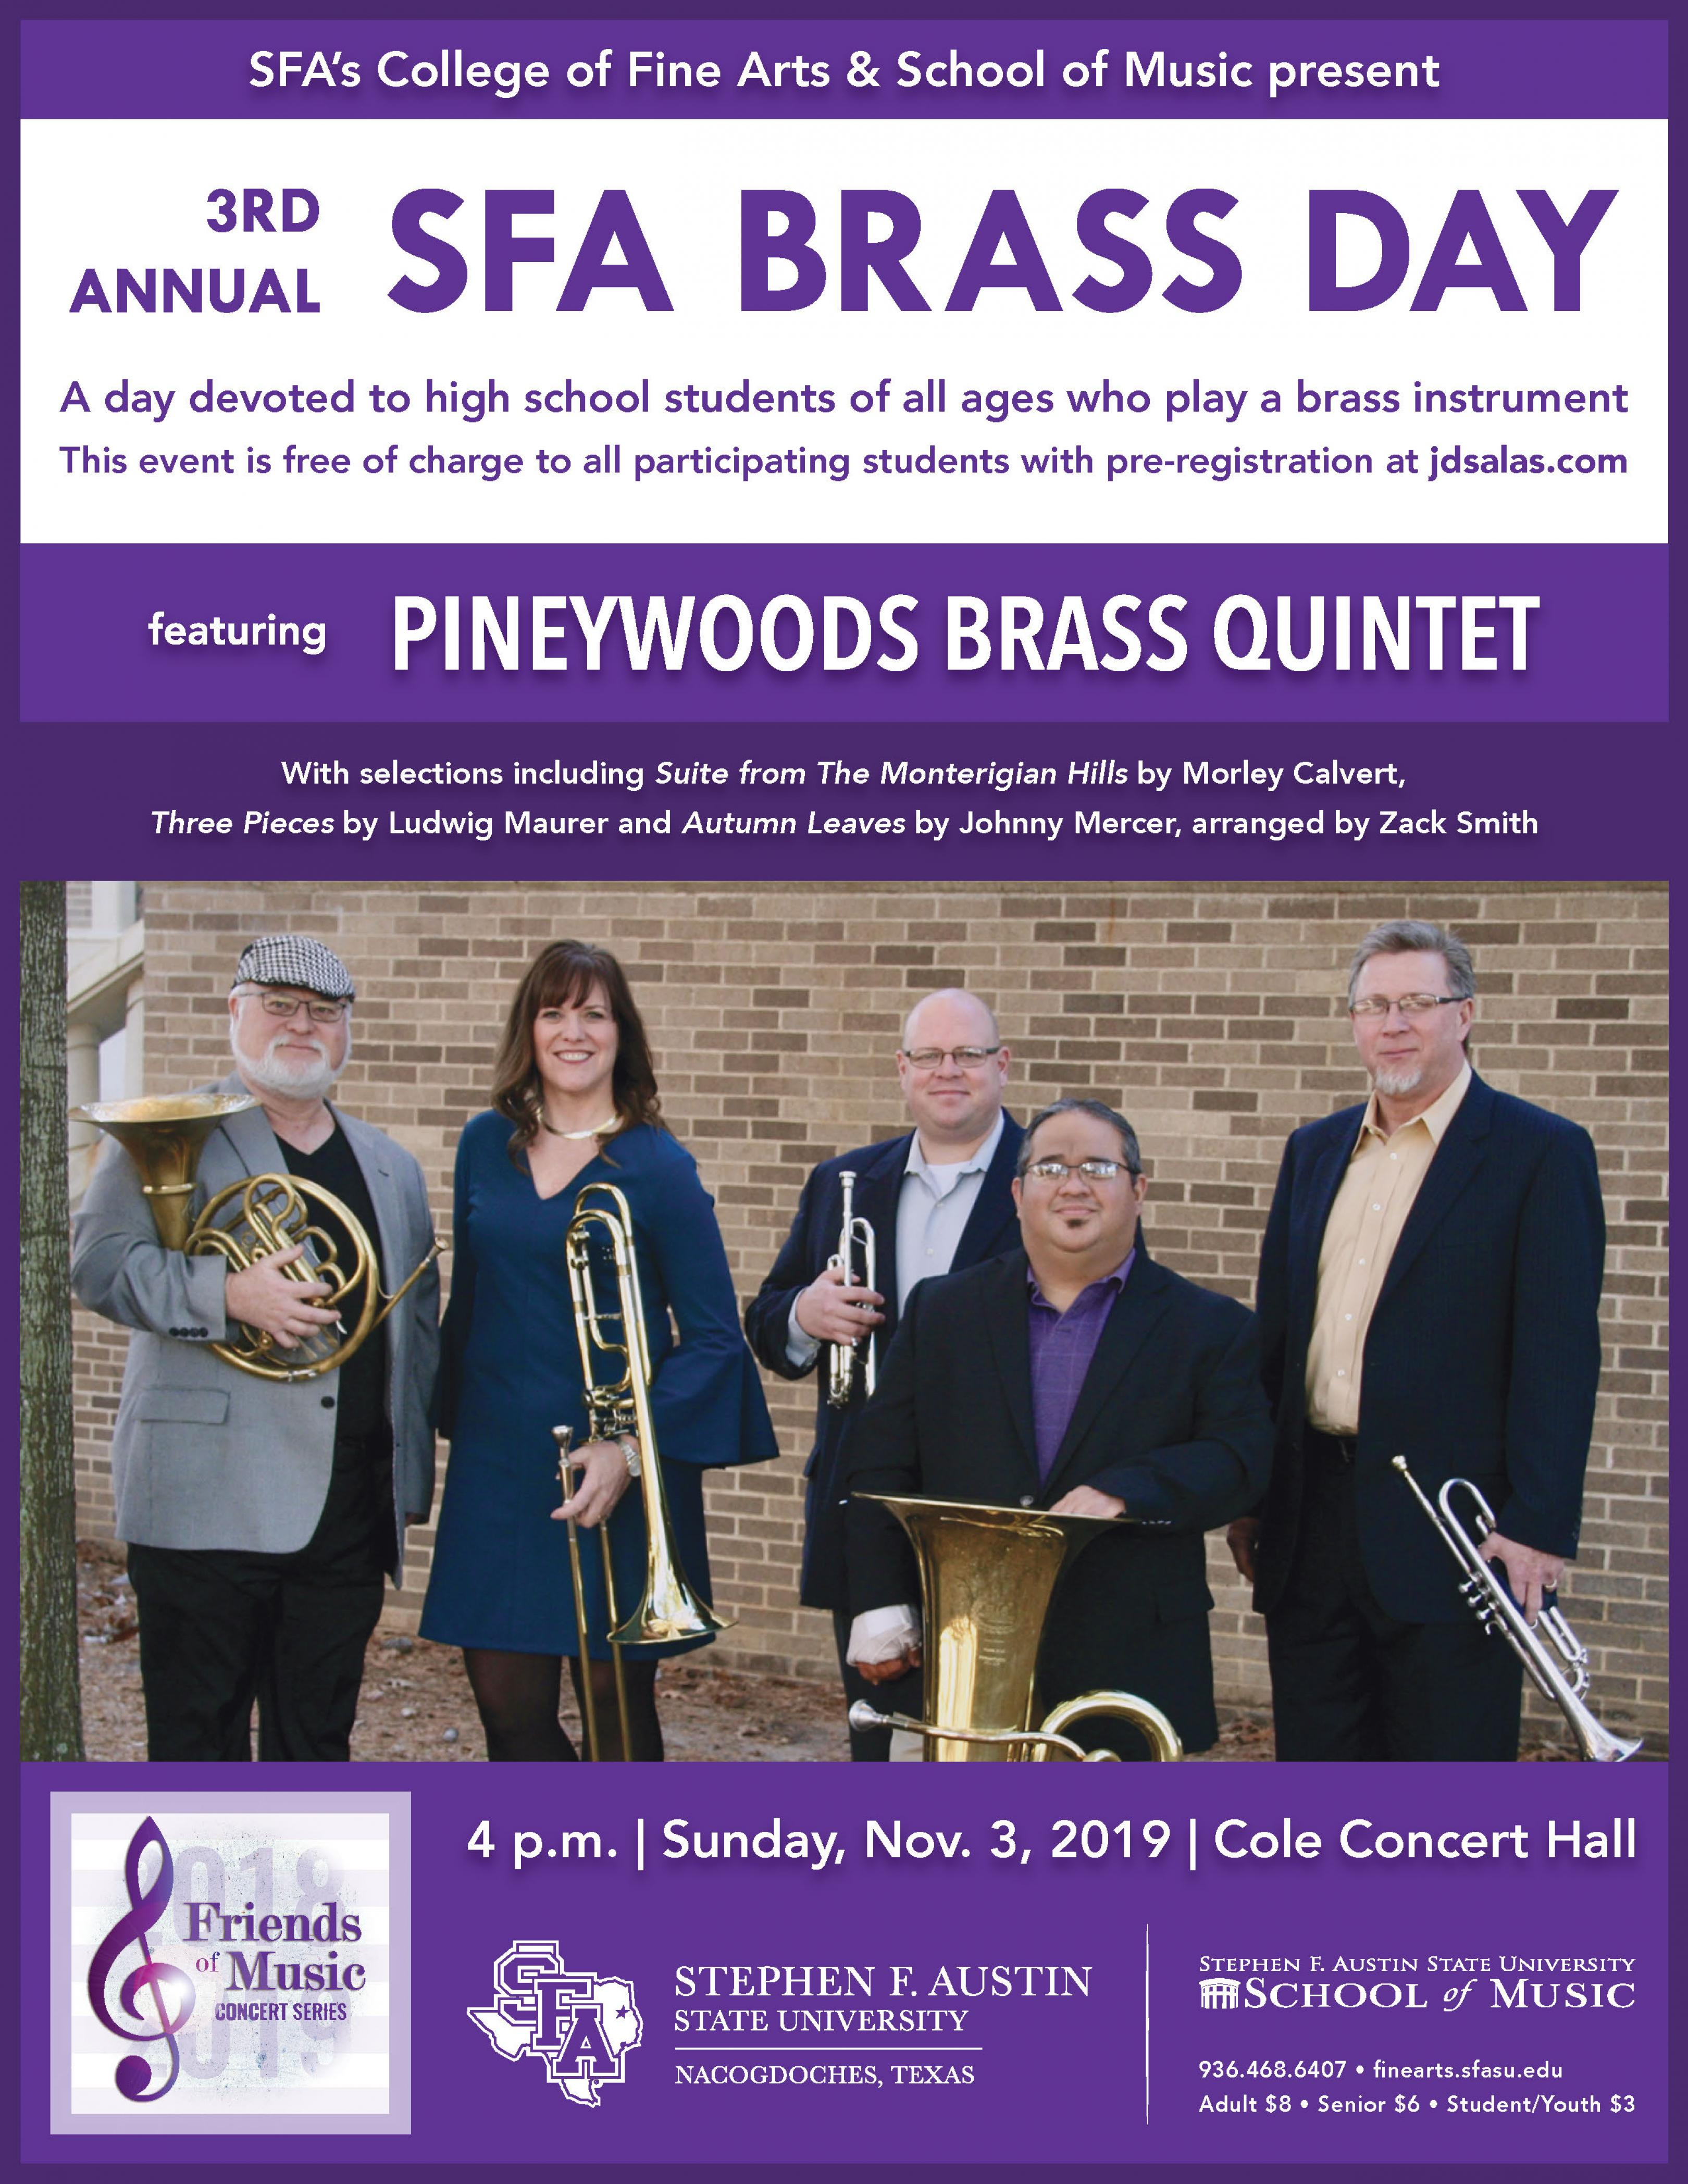 publicity image for Brass Day - Faculty Brass Quintet